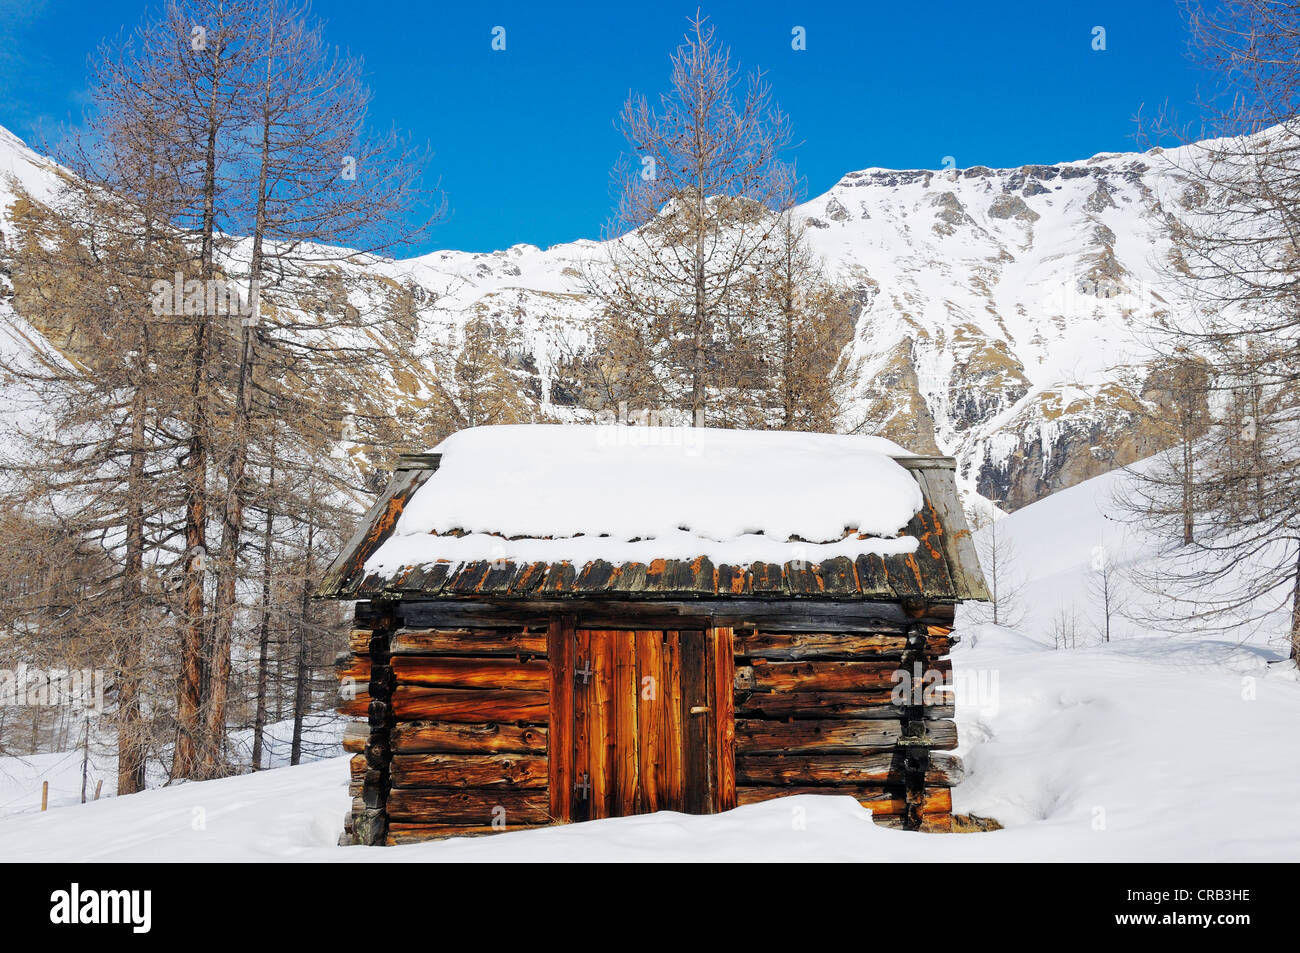 Log cabin, Grosse Fleisstal valley near Heiligenblut, National Park Hohe Tauern, Carinthia, Austria, Europe - Stock Image